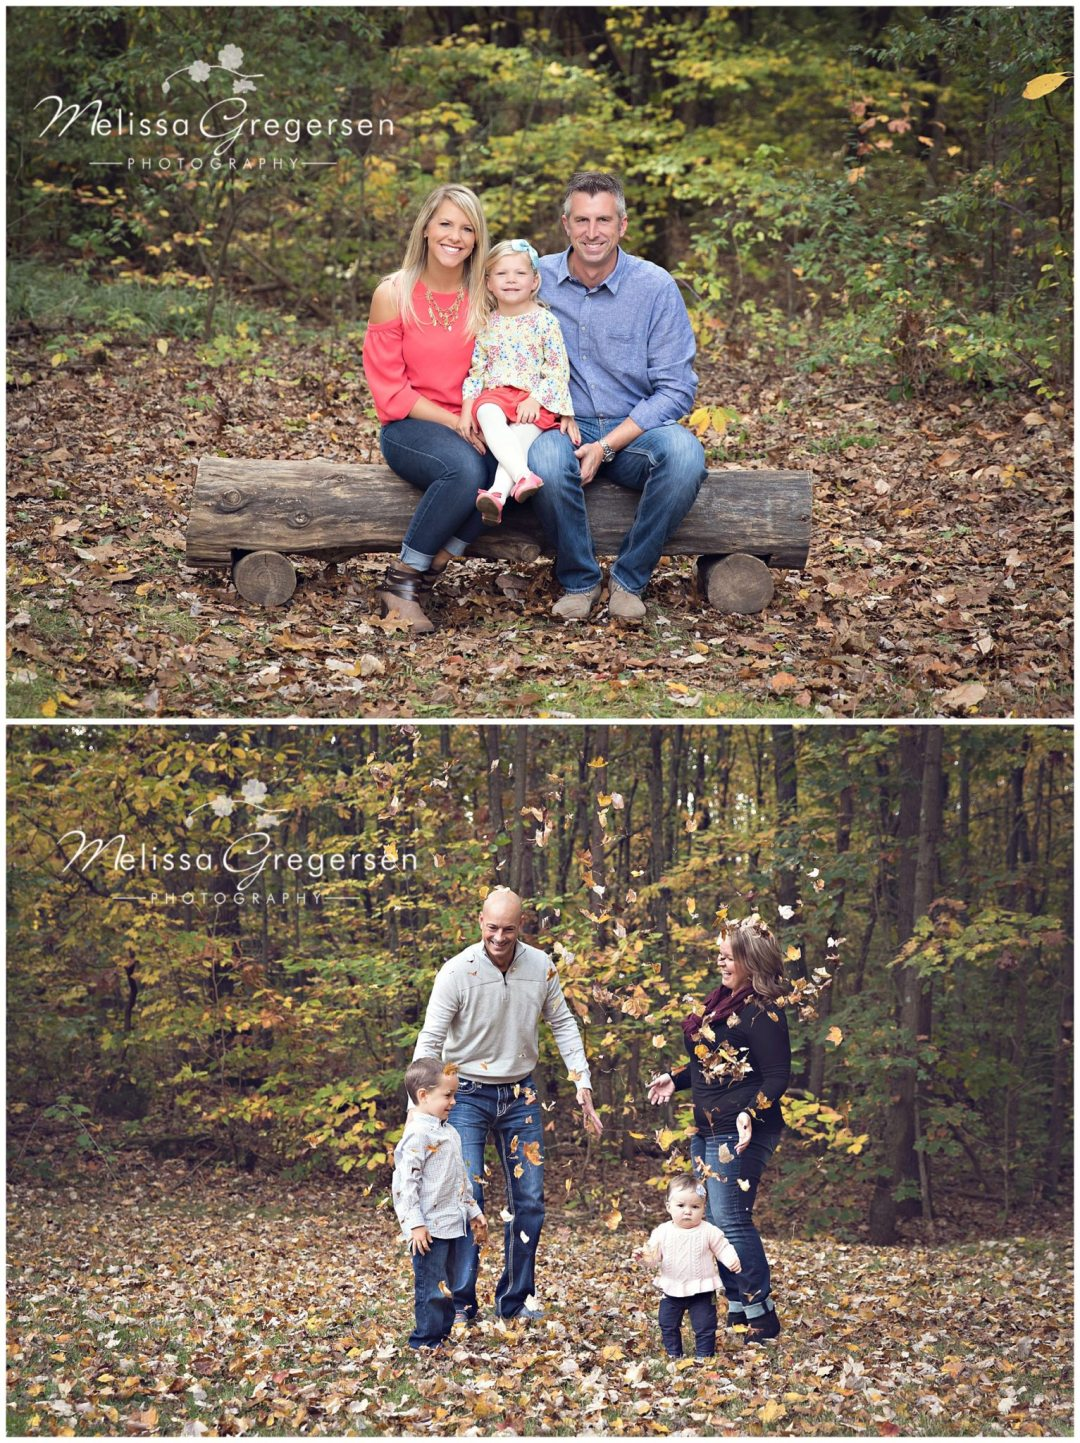 Fall Family Photography family playing in the leaves together